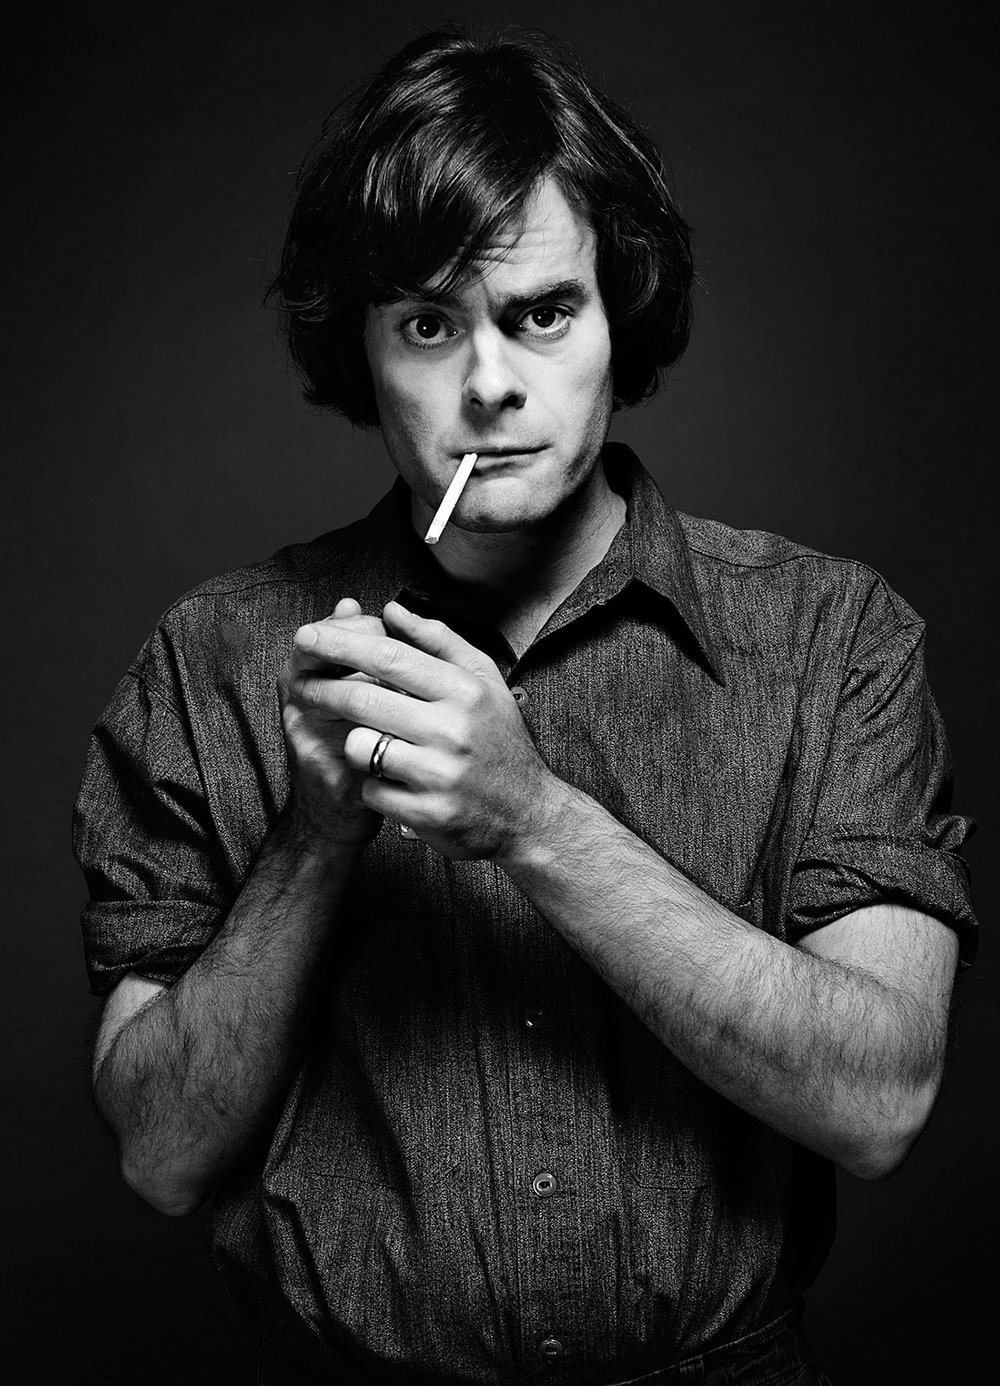 Bill Hader - New York City